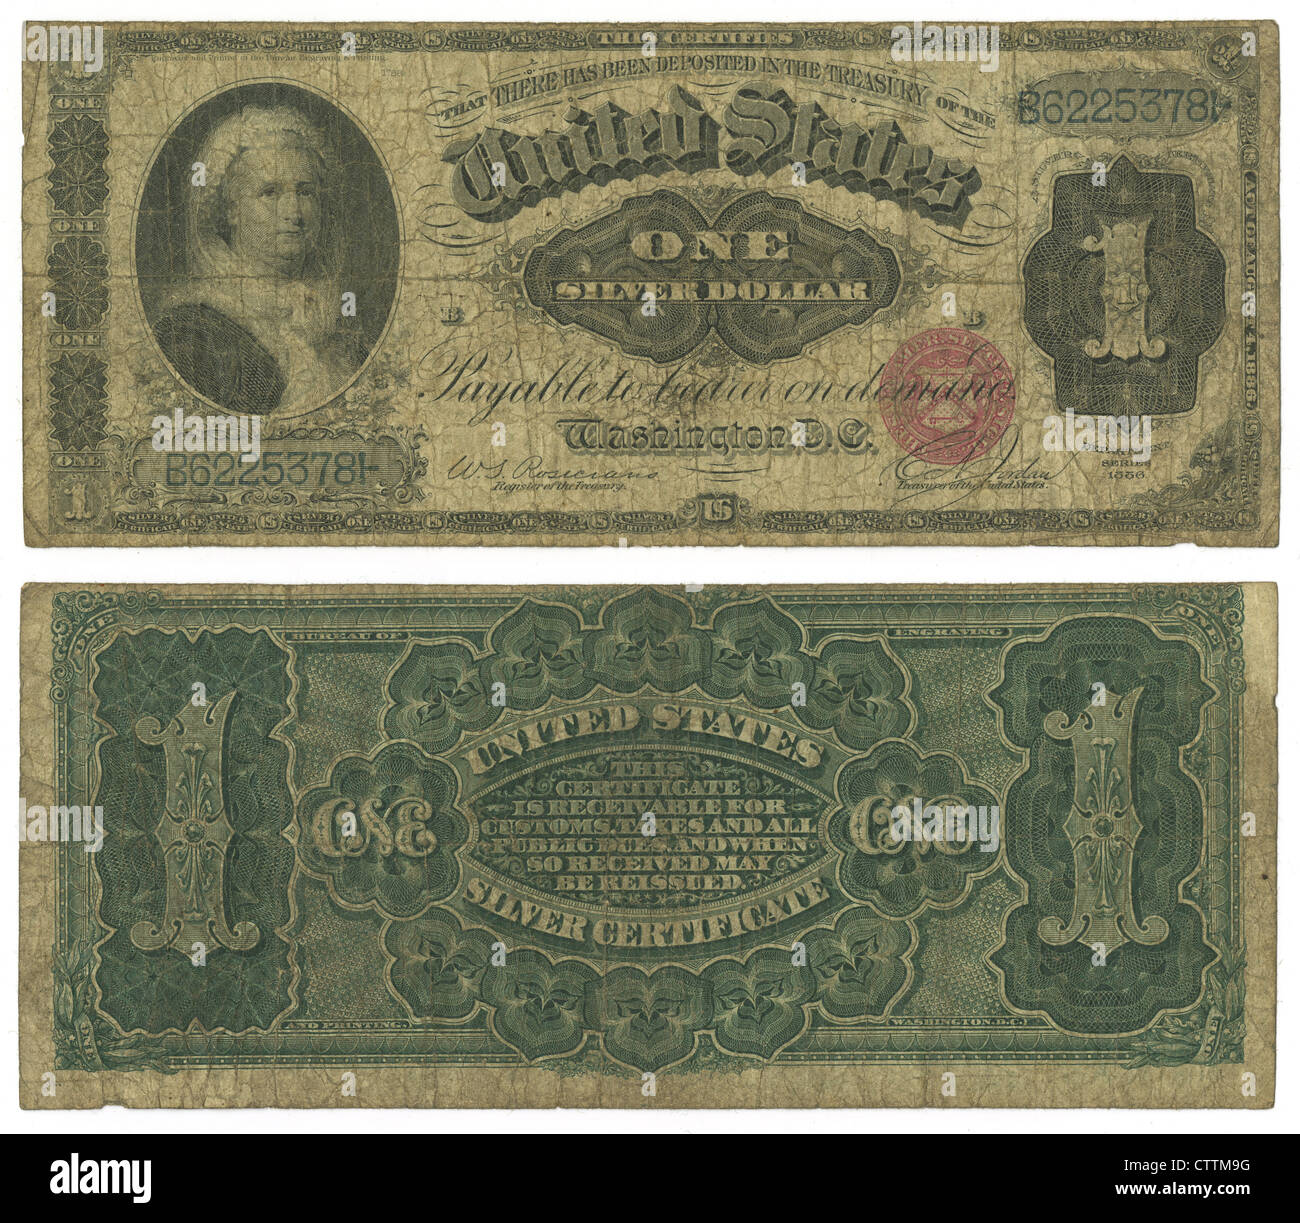 1886 Series One Silver Dollar United States banknote. - Stock Image